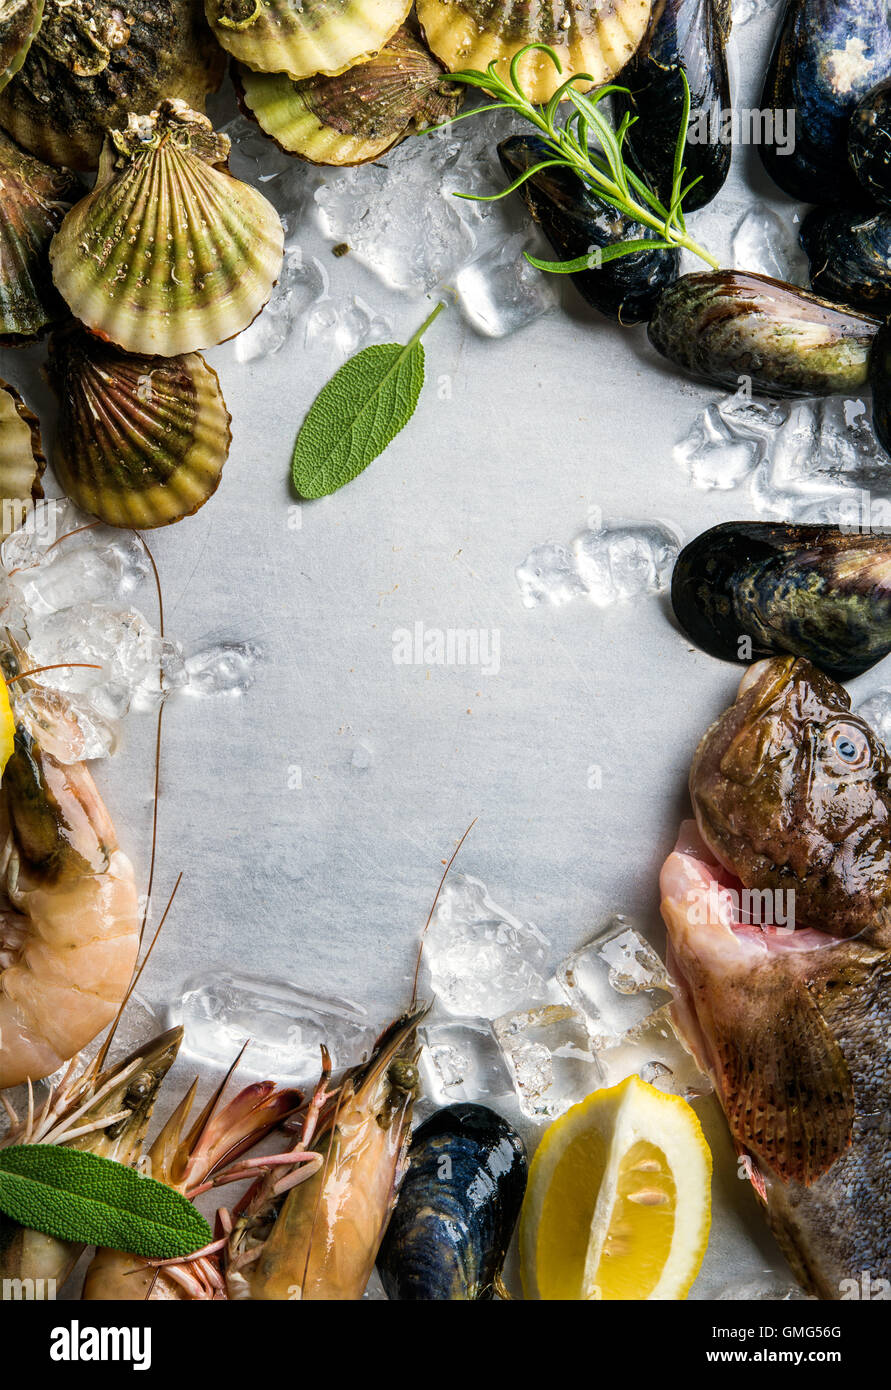 Fresh seafood with herbs and lemon on ice. Prawns, fish, mussels, scallops over steel metal background. Top view, - Stock Image